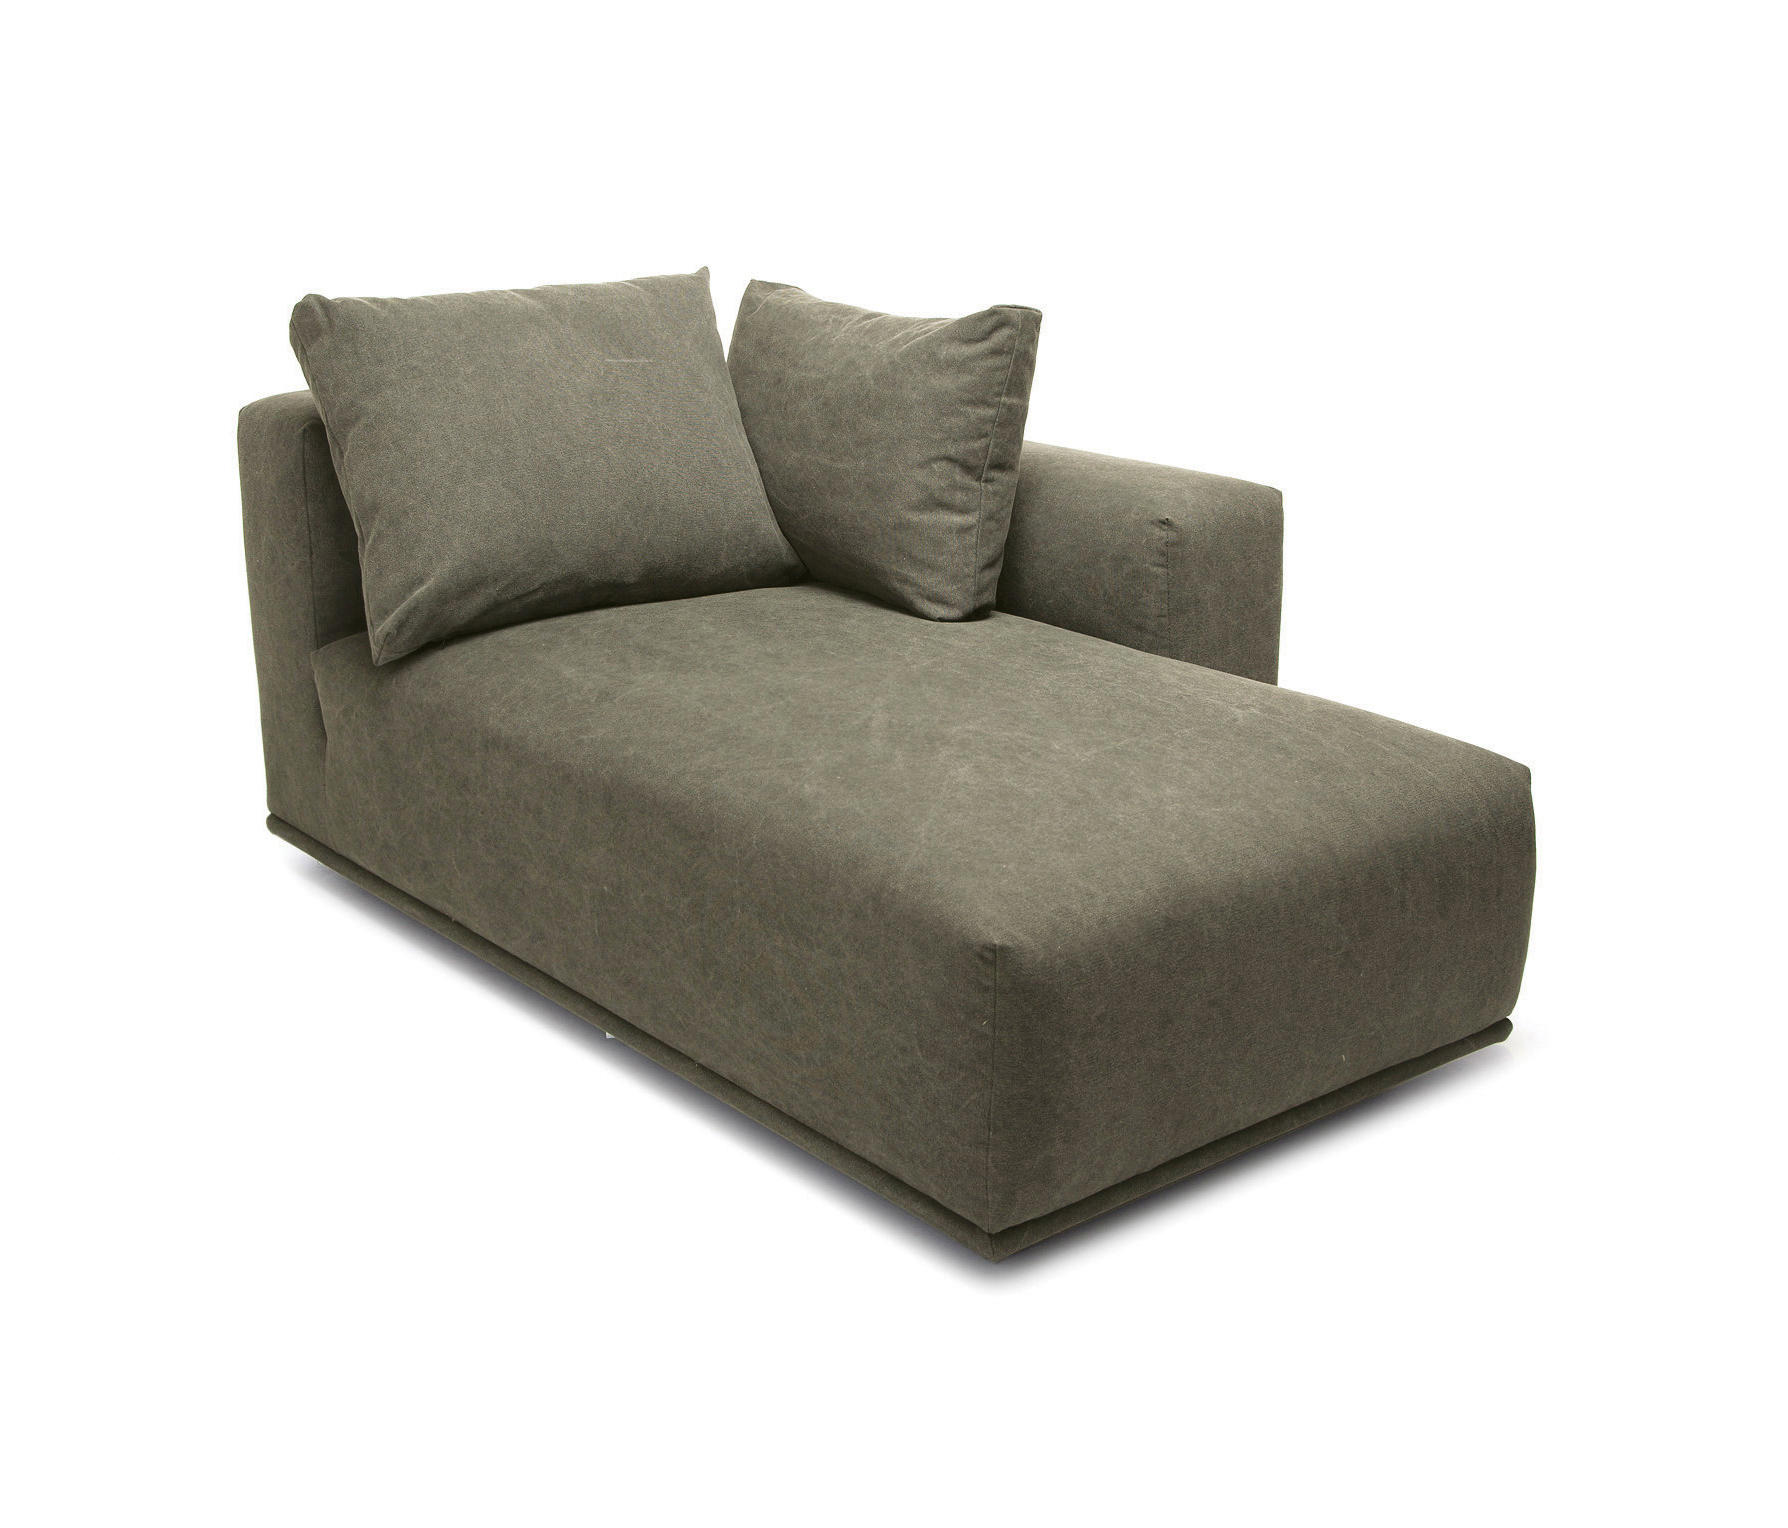 Chaises Longues Madonna Sofa Chaise Longue Left Canvas Washed Green 156